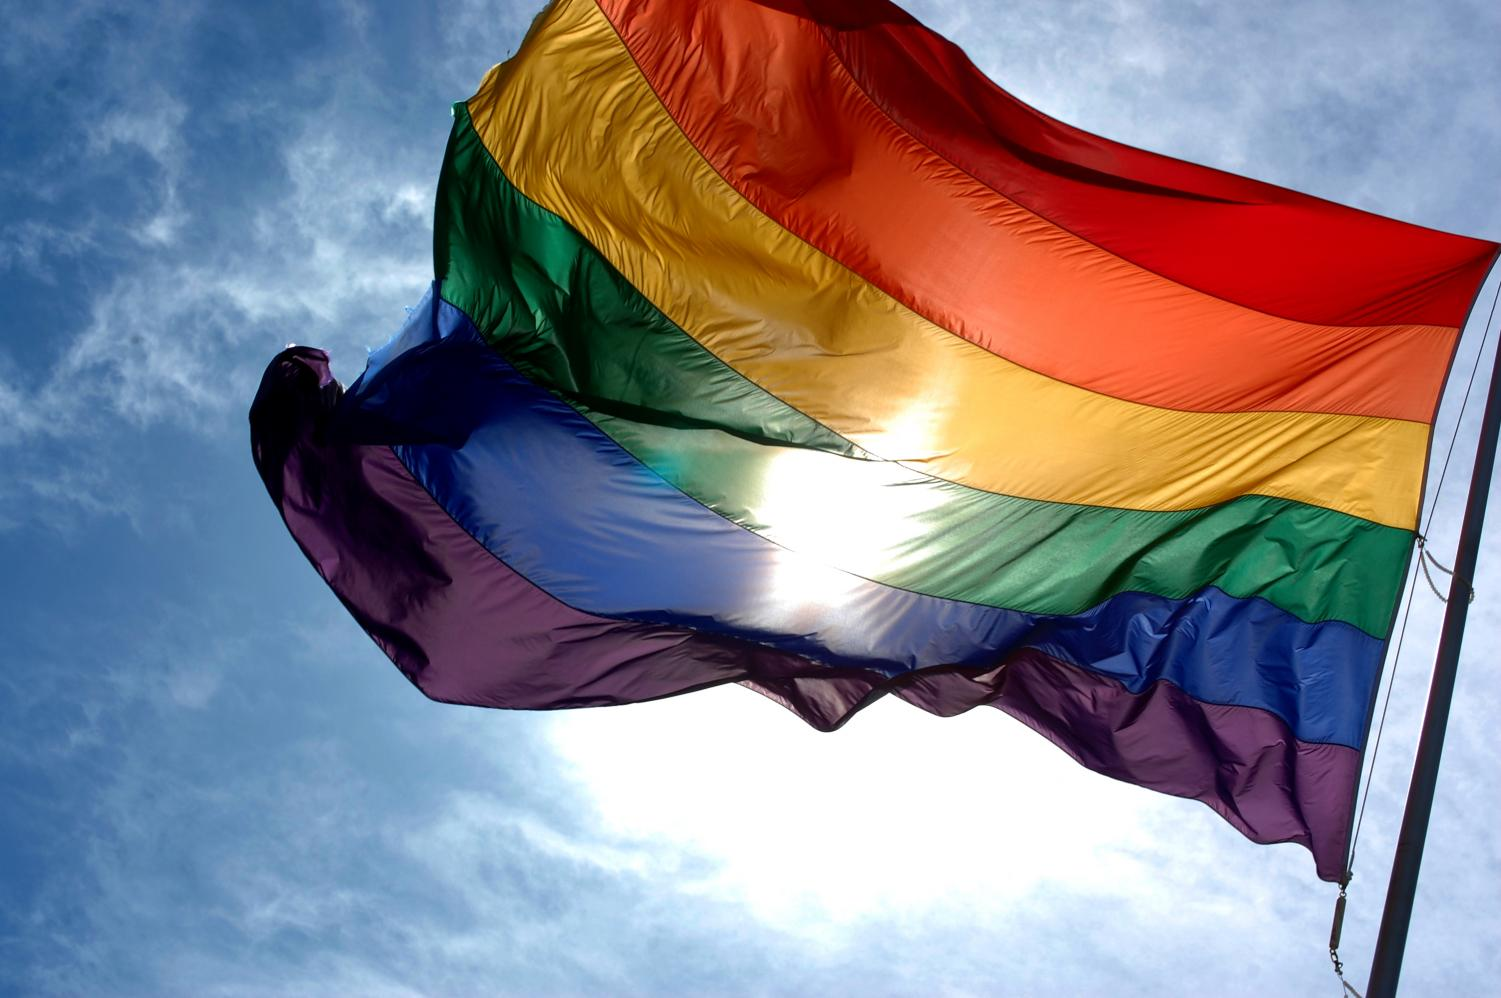 The Pride Flag, composed of all the colors of the rainbow, is a symbol of overcoming fear and hate for the LGBTQ+ community.